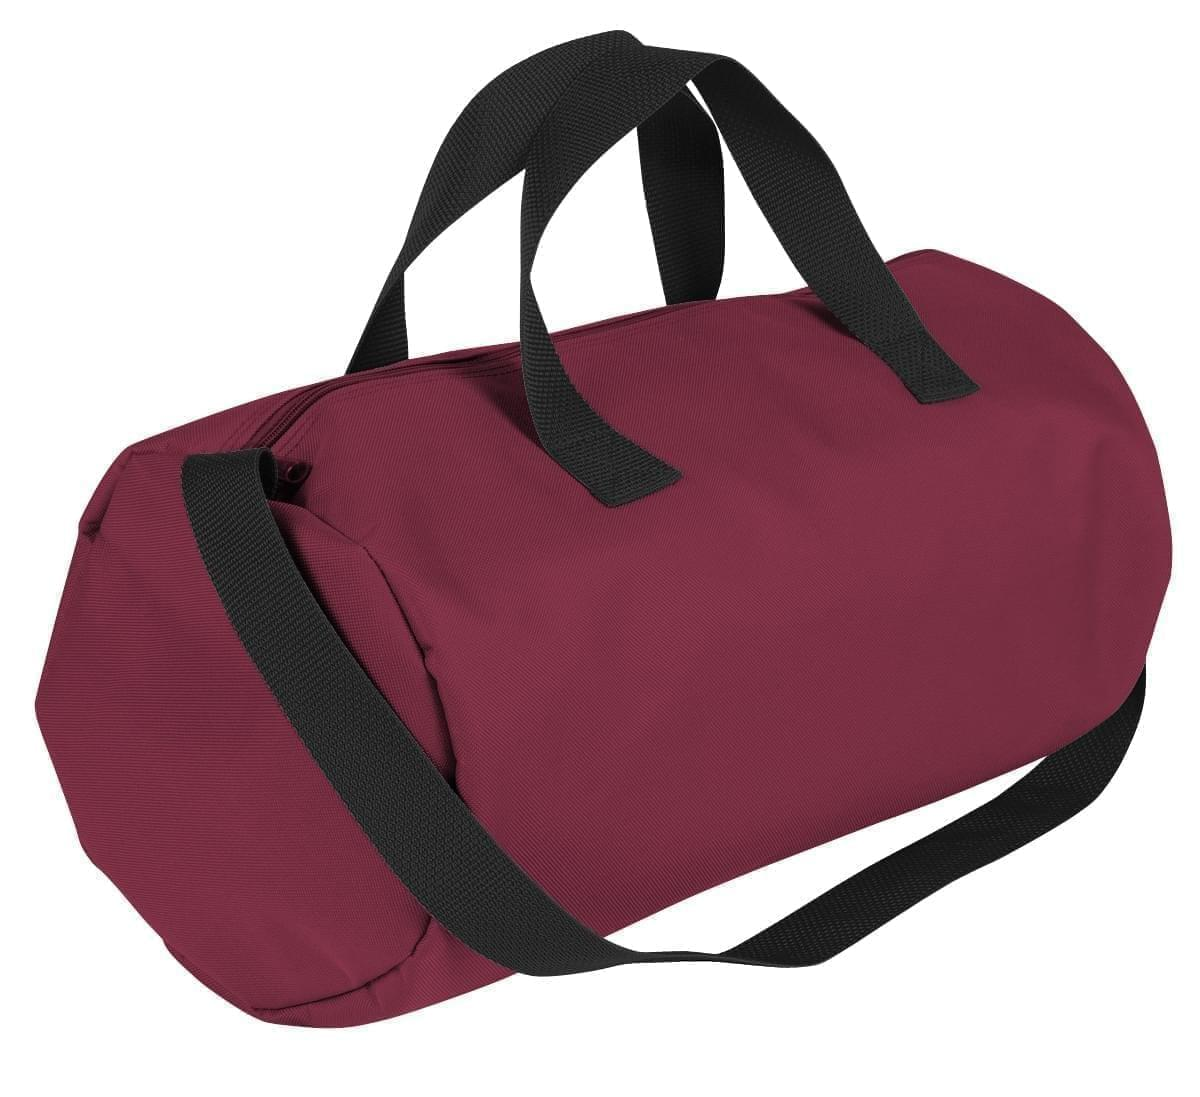 USA Made Nylon Poly Gym Roll Bags, Burgundy-Black, ROCX31AAQR